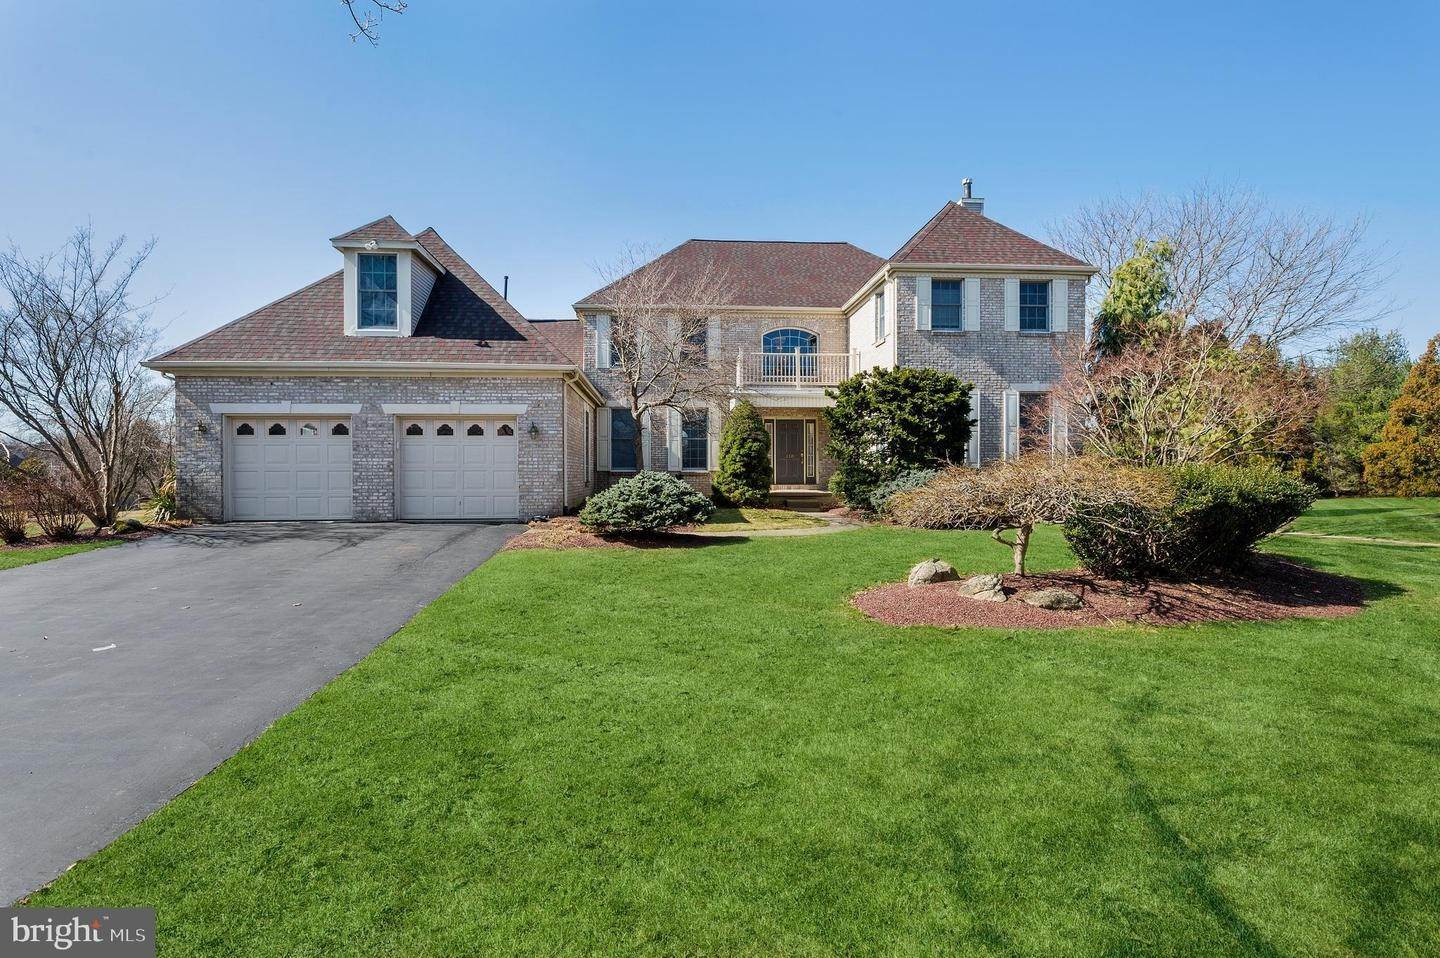 Detached House for Sale at 110 S LONGFELLOW Drive Princeton Junction, New Jersey 08550 United States